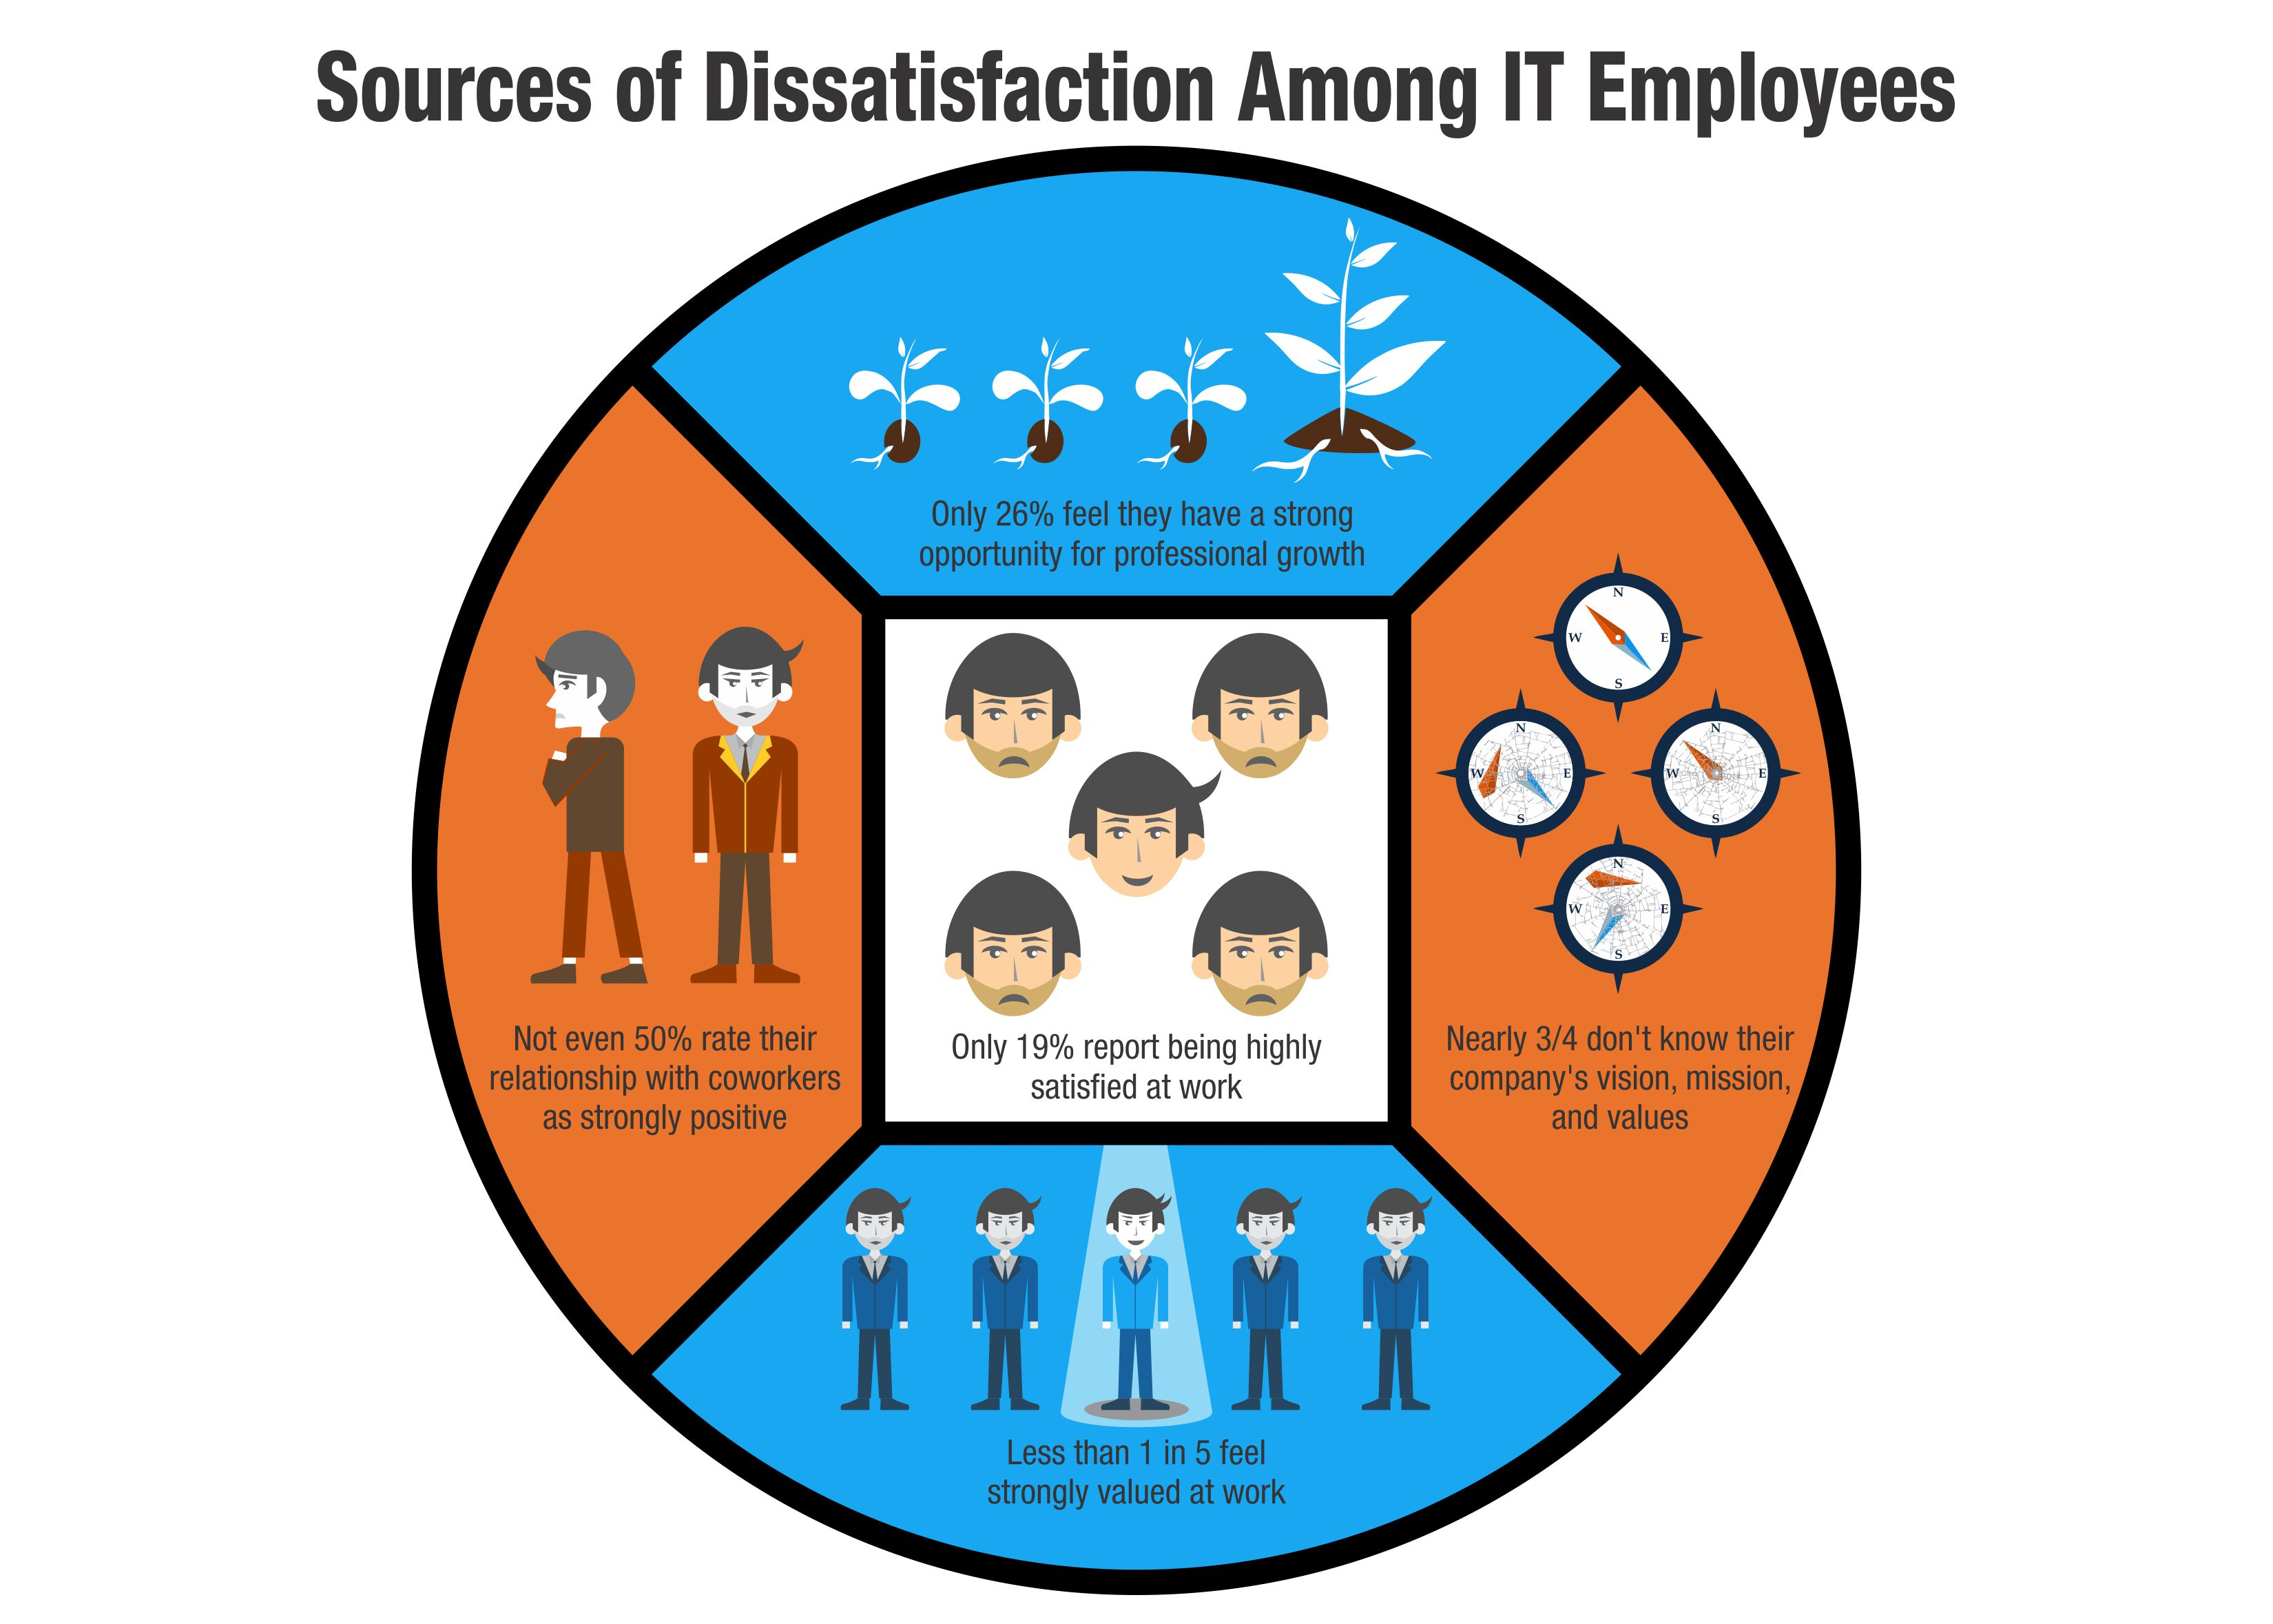 Sources of dissatisfaction among IT employees | TINYpulse